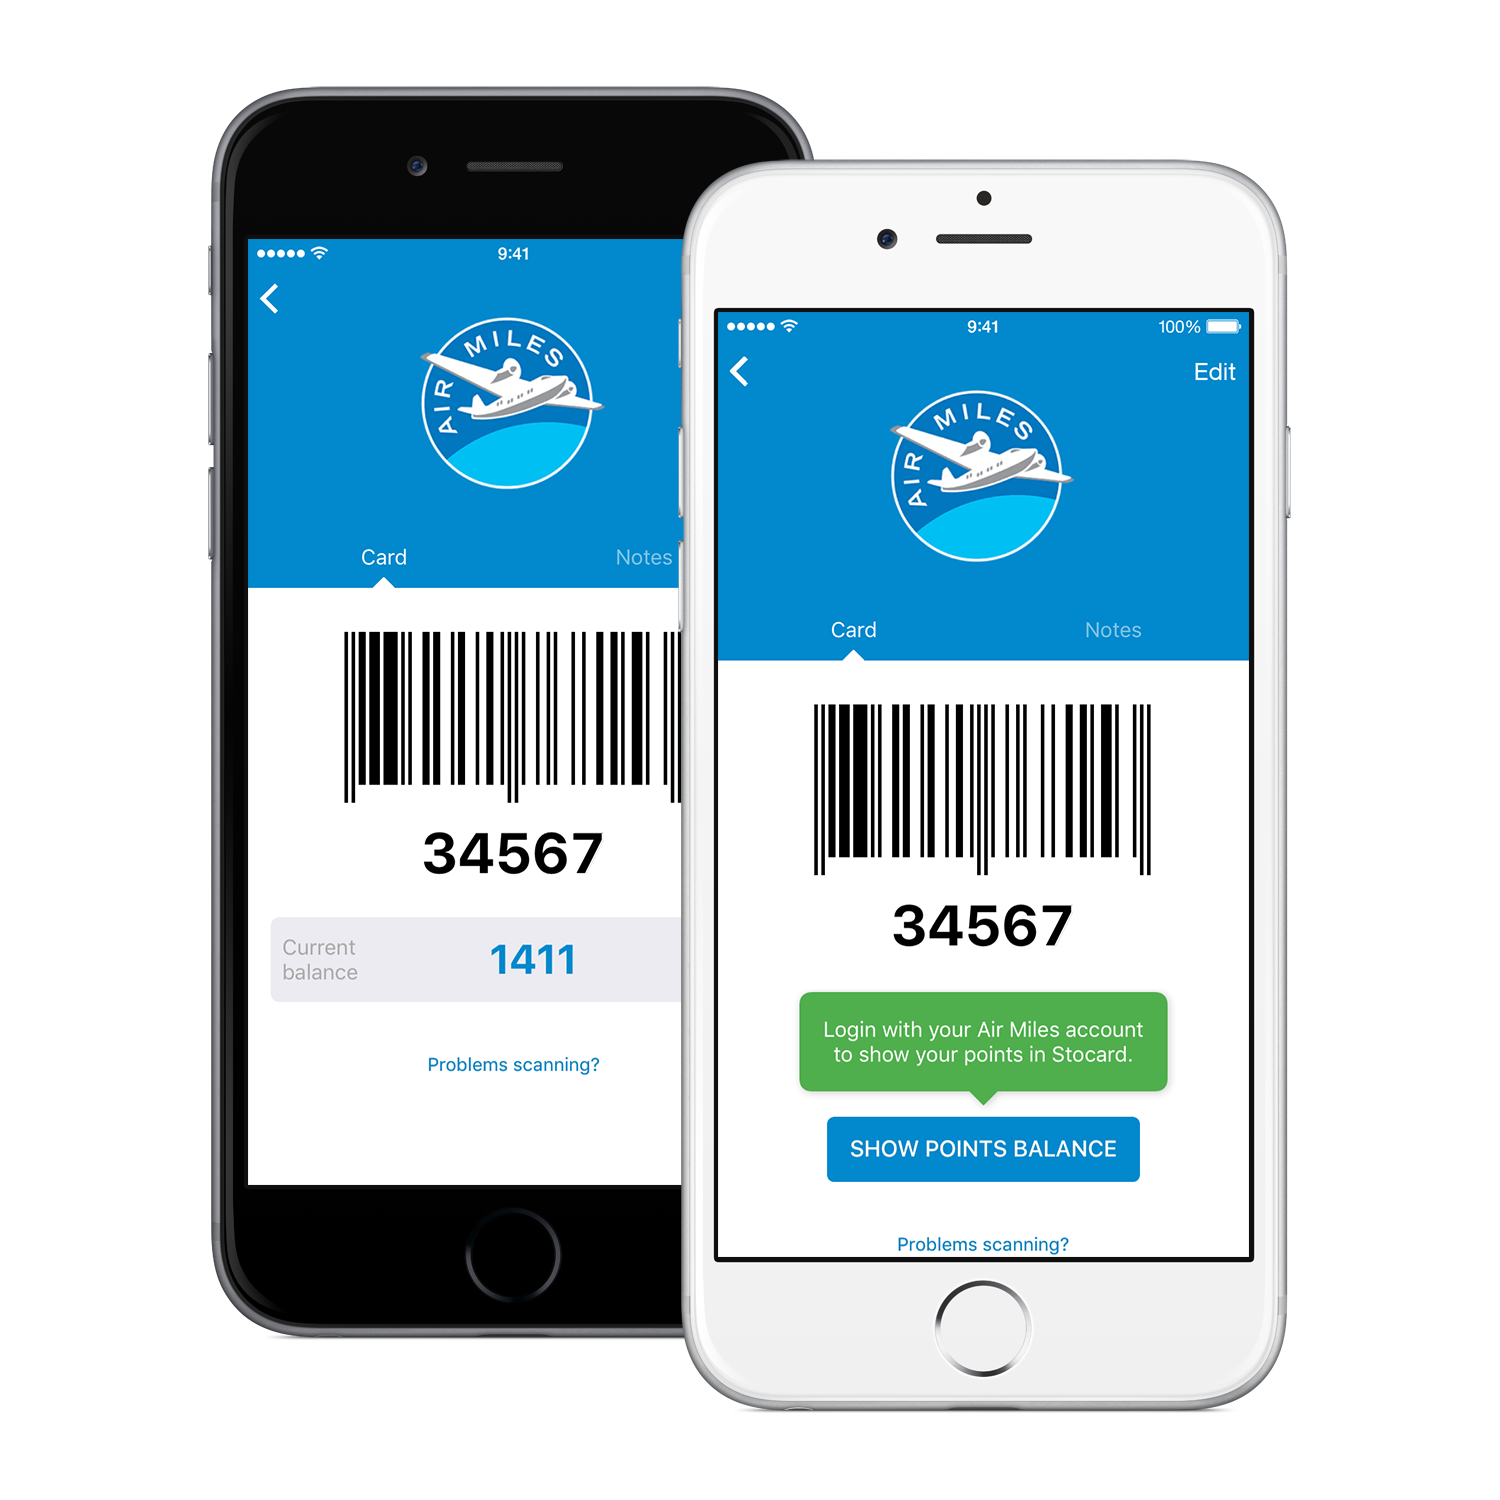 How To Check Your Reward Points Balance On The Go With The